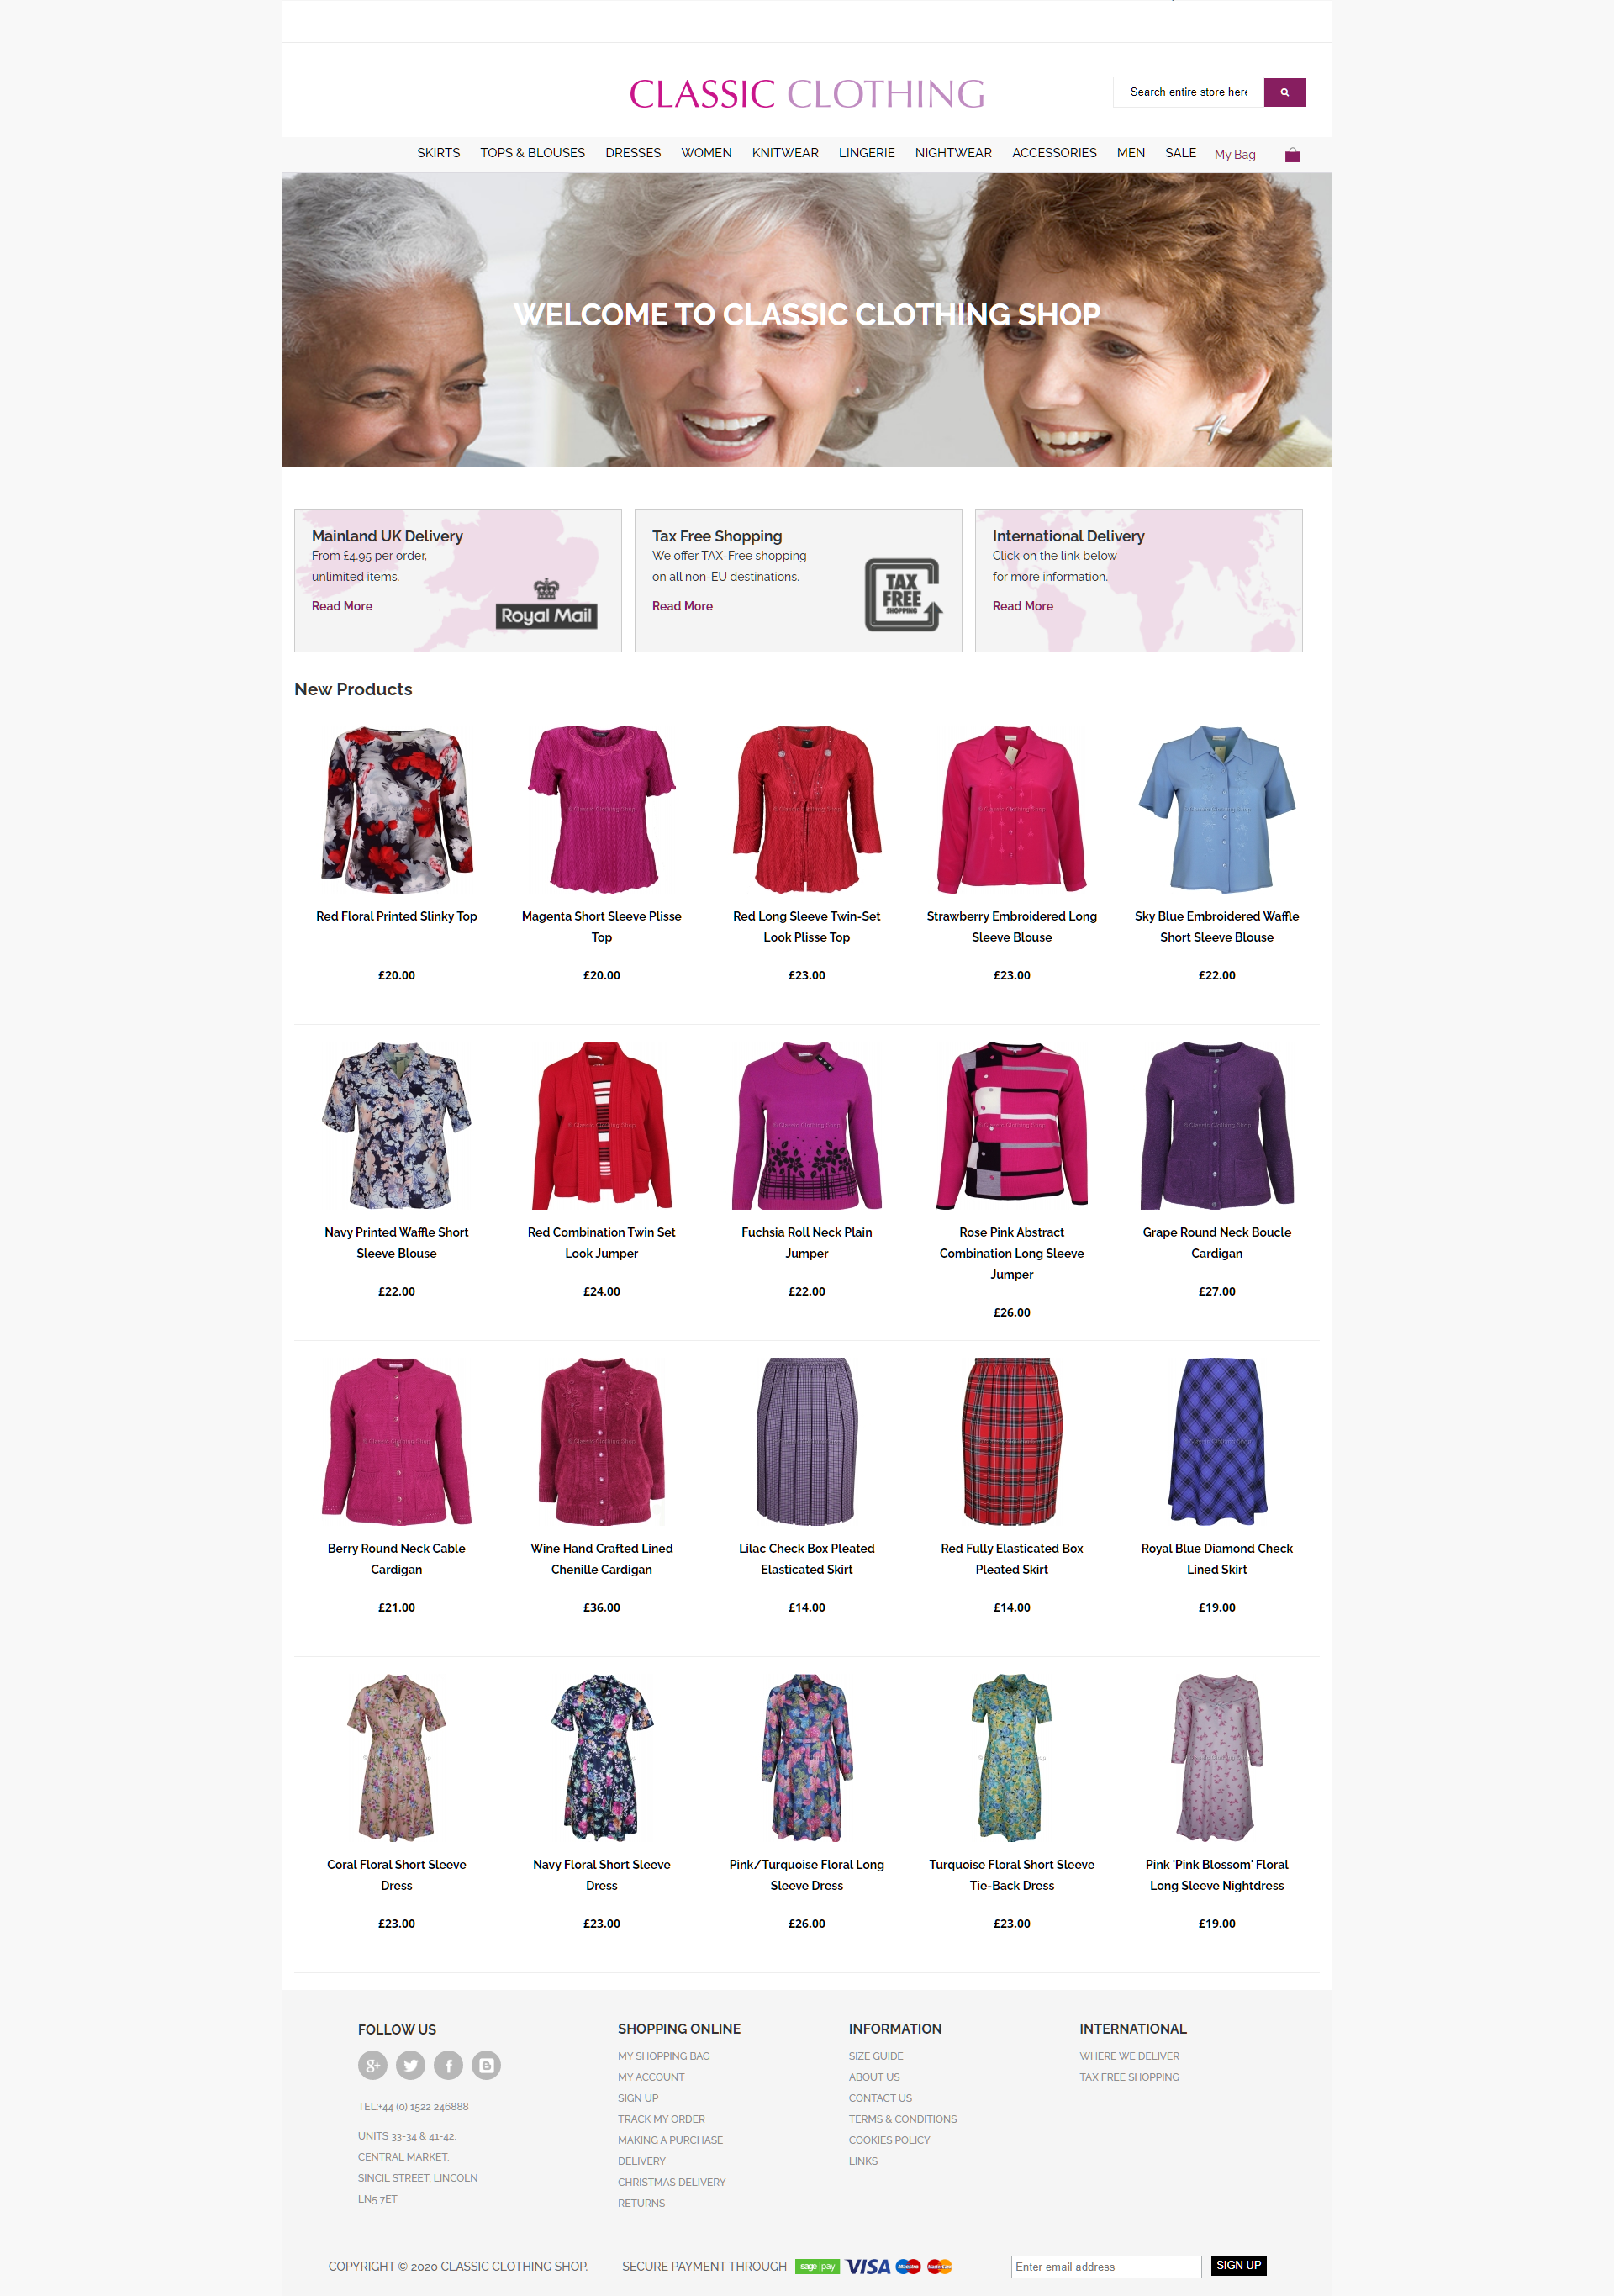 Classic Clothing Shop screenshot of website homepage with link to it